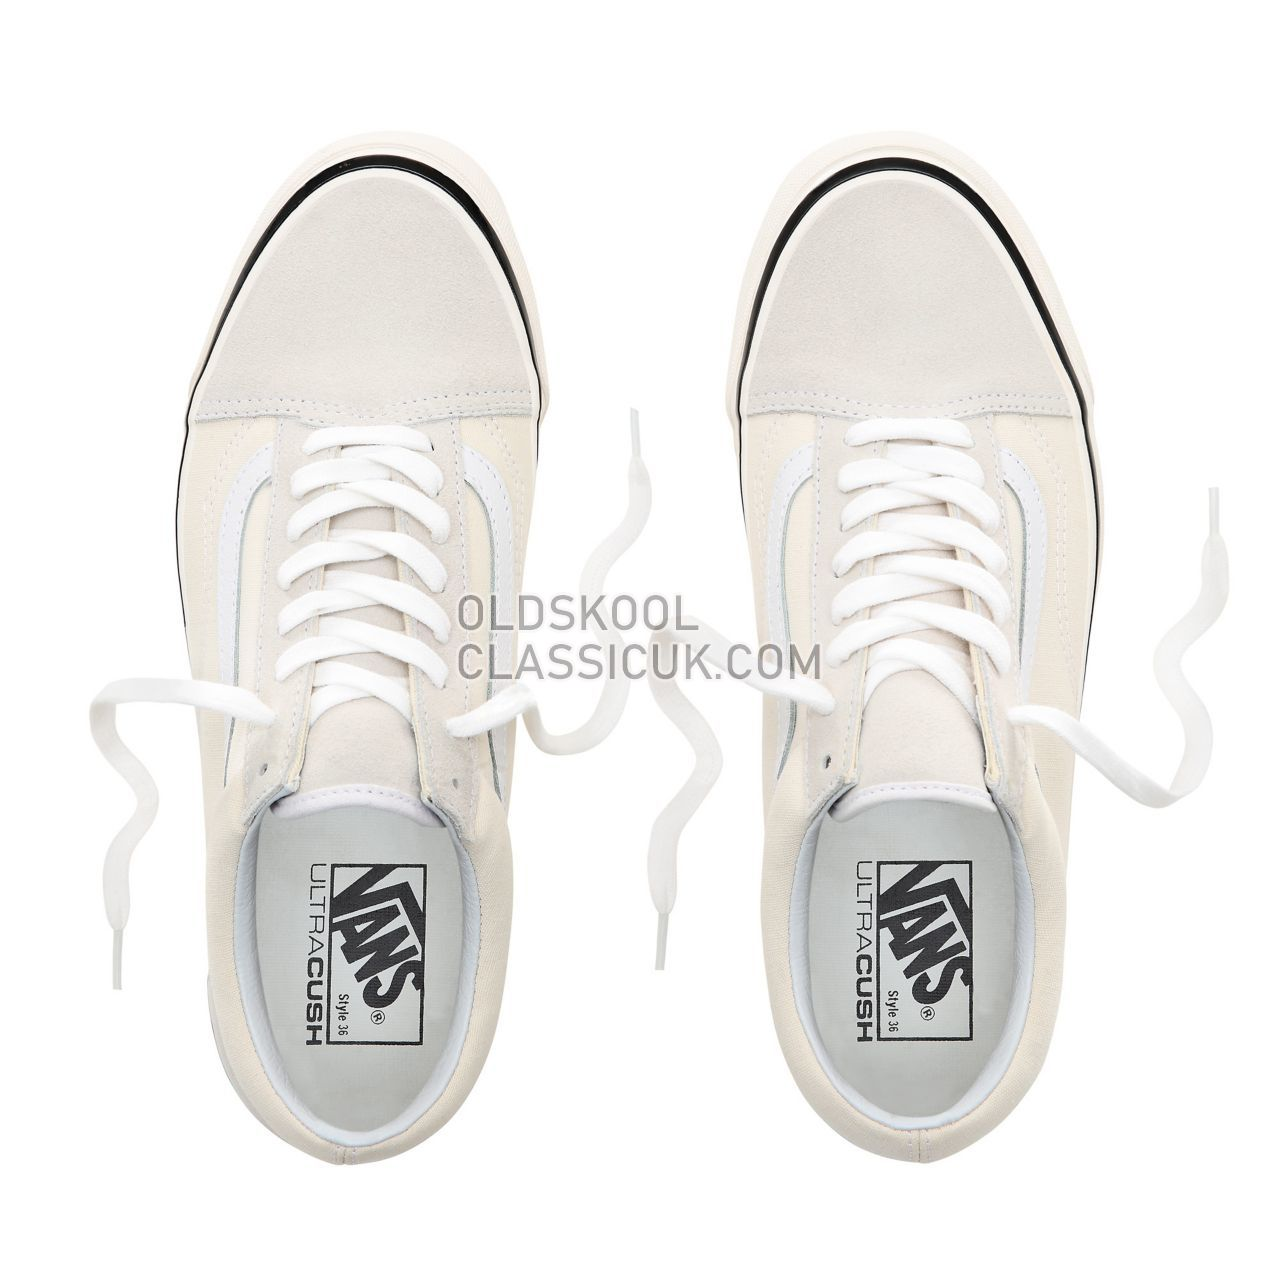 Vans Old Skool 36 DX Sneakers Mens Womens Unisex (Anaheim Factory) Classic White VN0A38G2MR4 Shoes